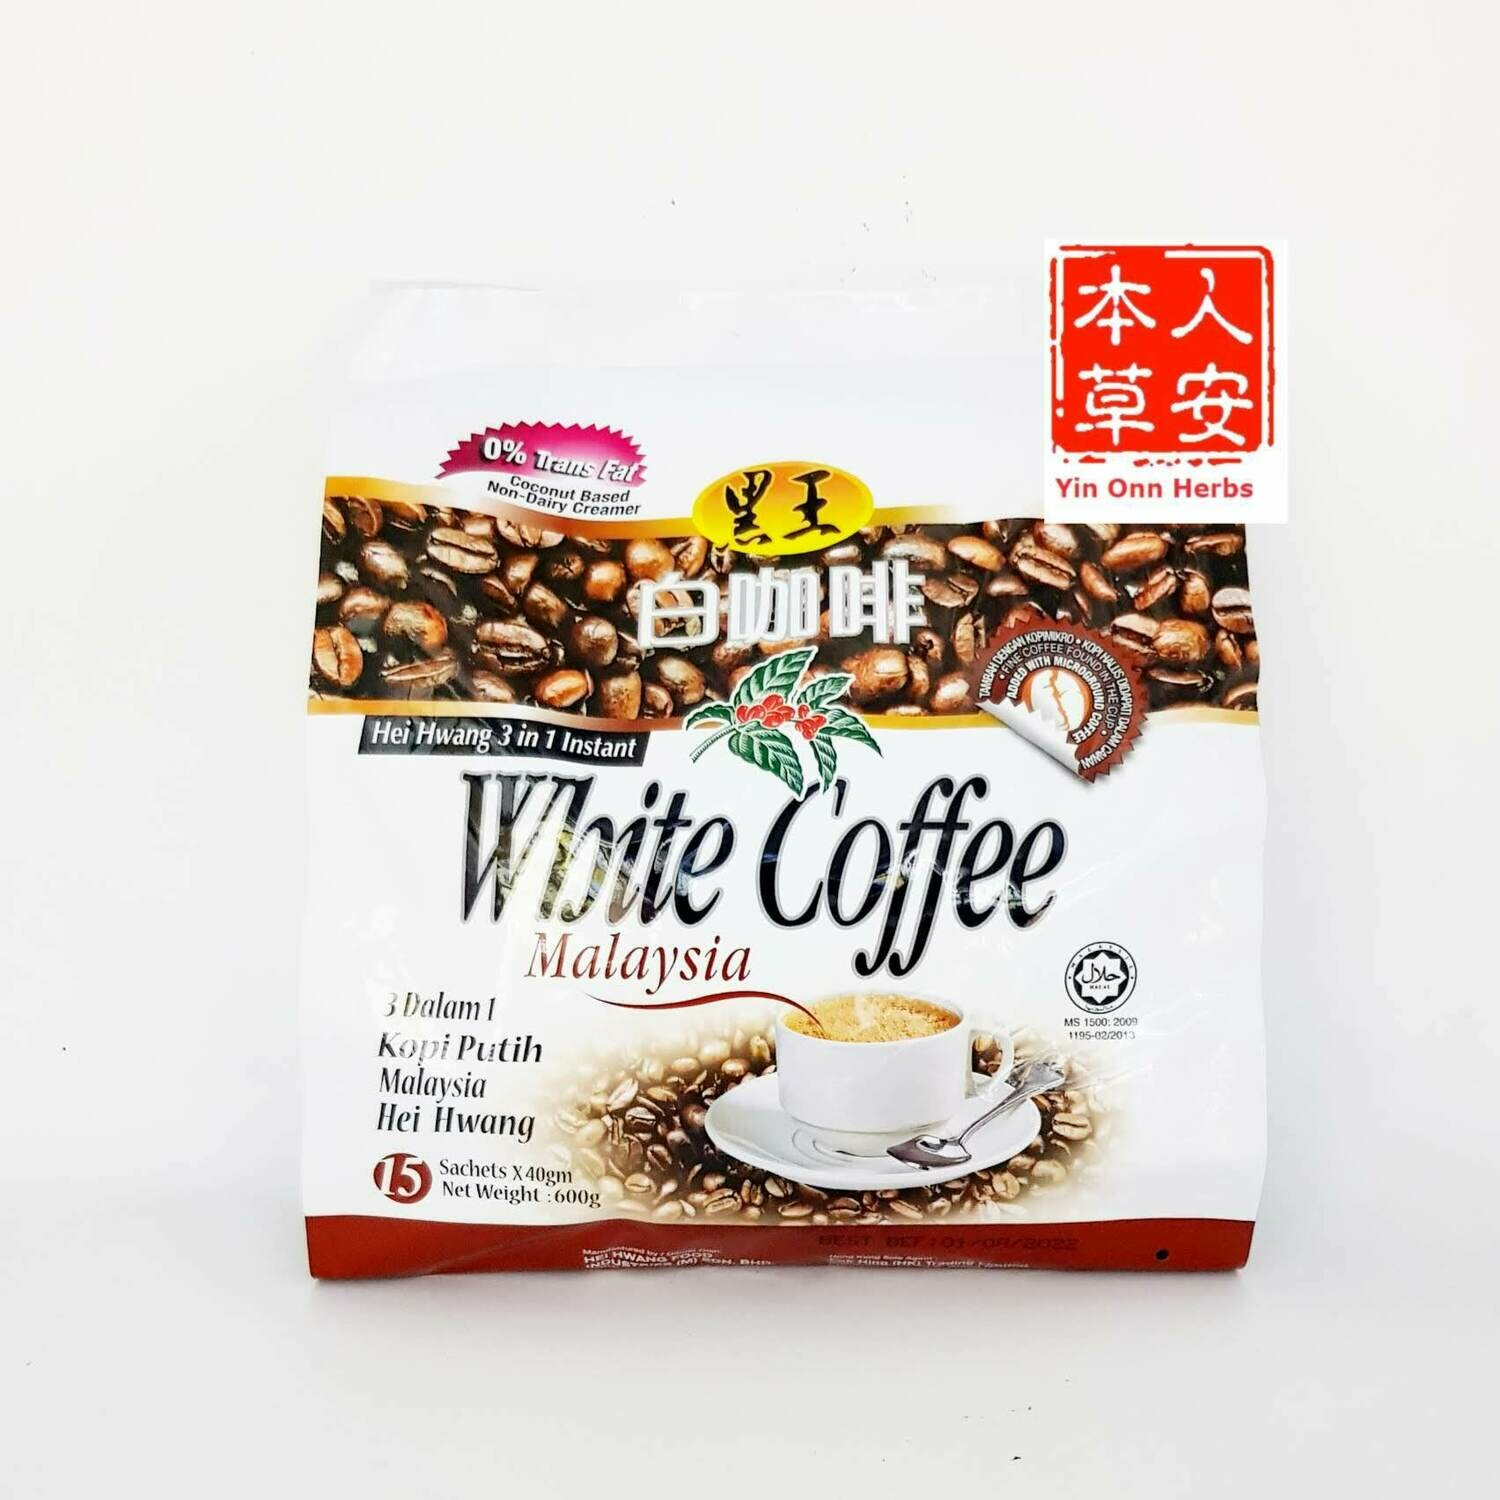 黑王3in1原味白咖啡 40gX15's Hei Hwang Classic 3in1 White Coffee